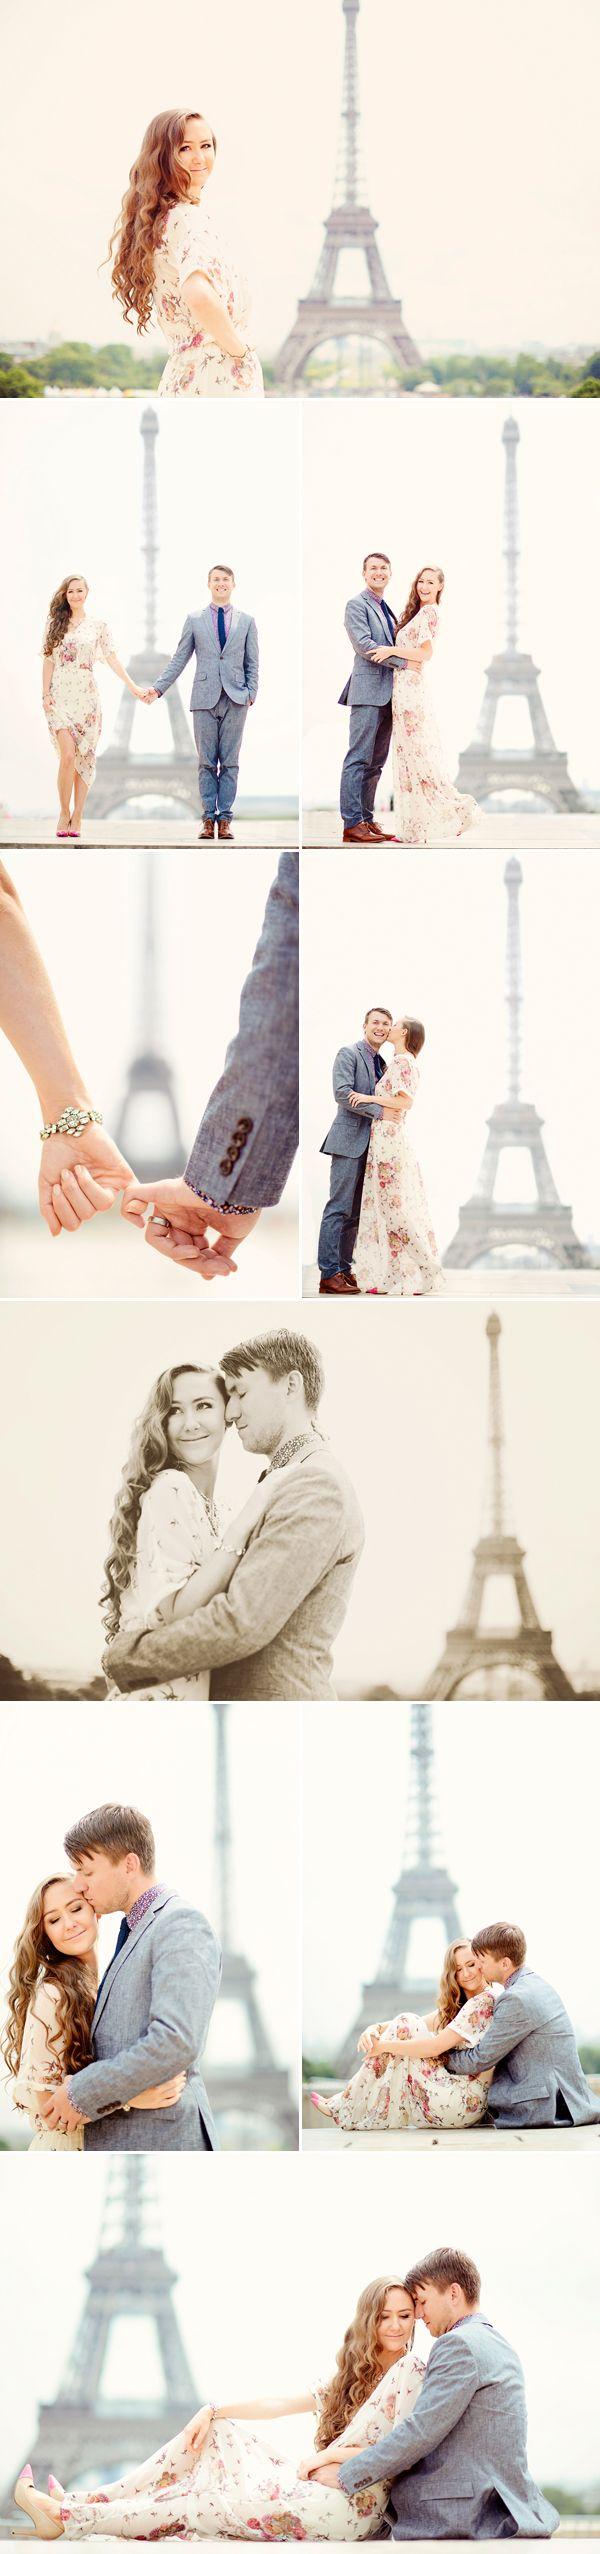 Romantic Paris Honeymoon Session (from Emm and Clau)